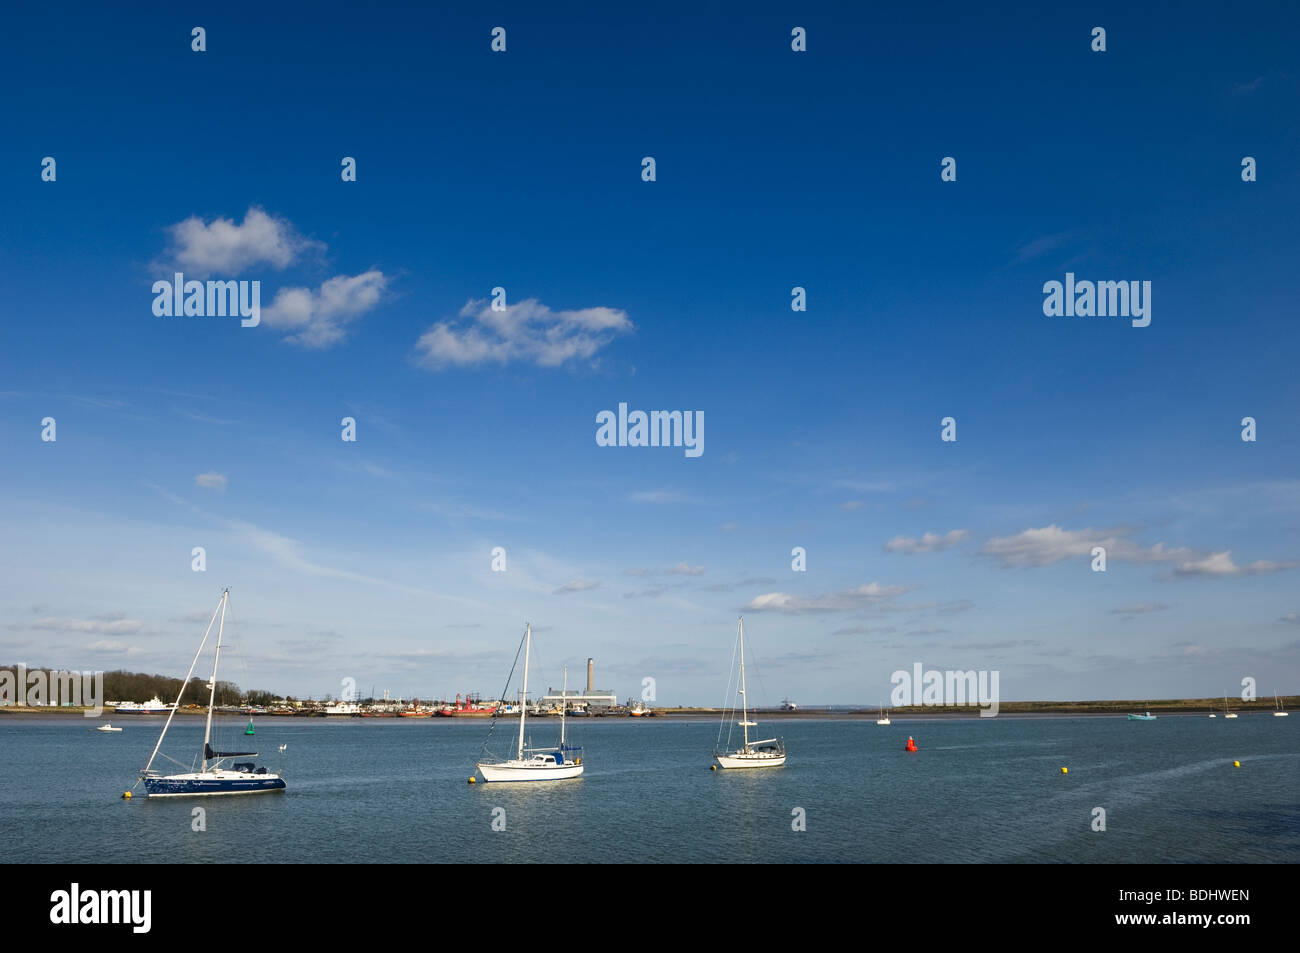 Three sailboats anchored on the Medway. - Stock Image